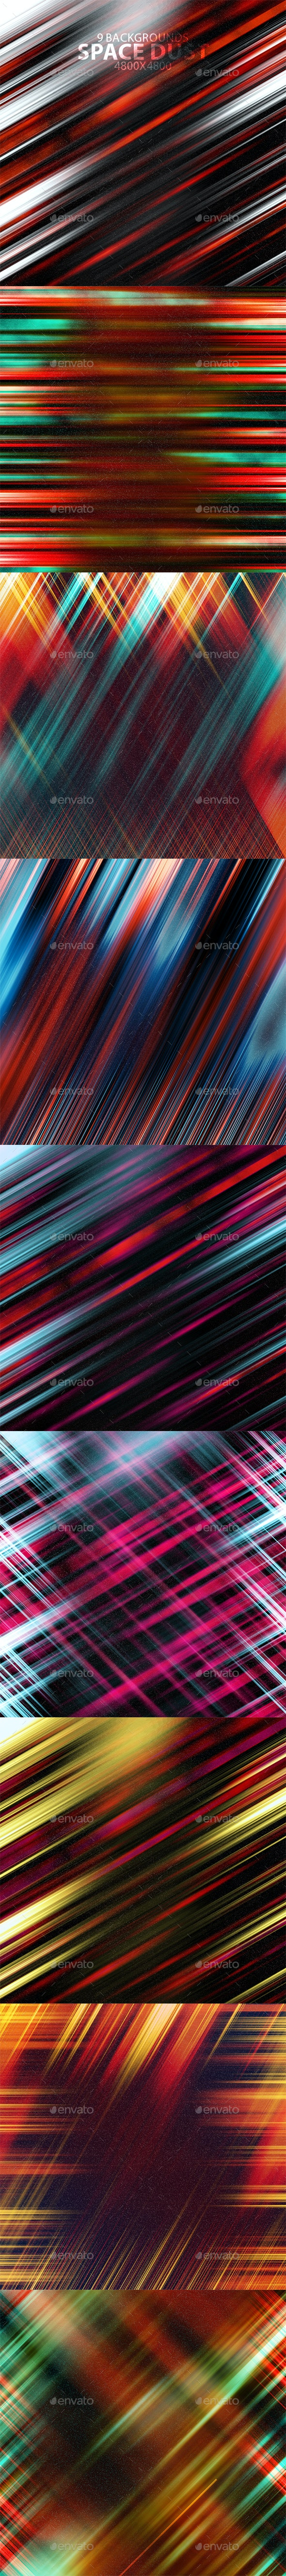 Space Dust Background Set - Abstract Backgrounds